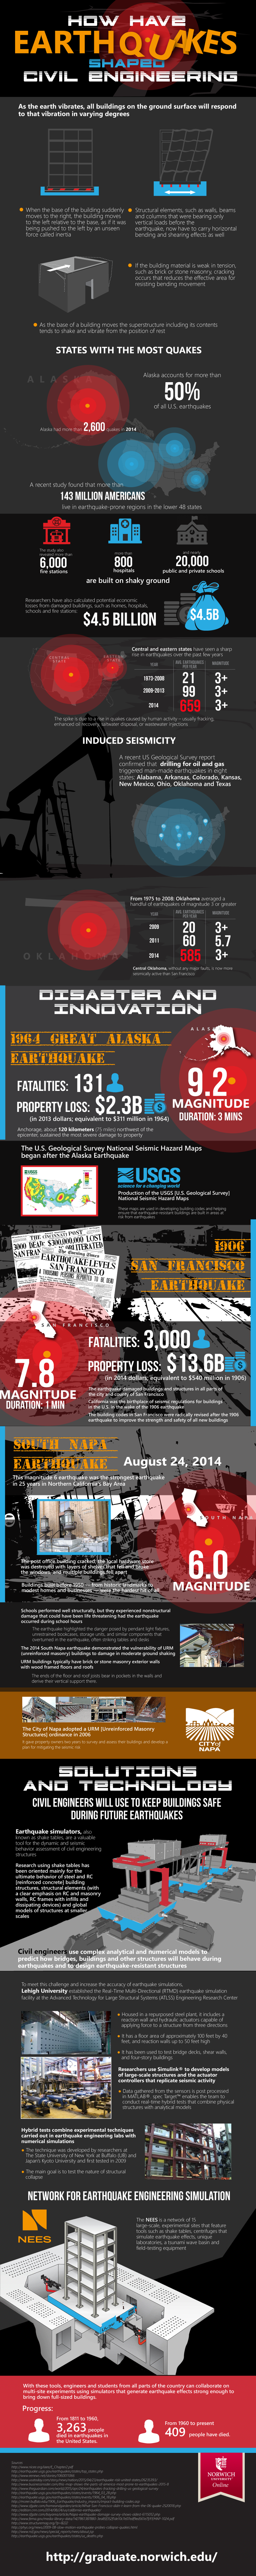 earthquakes and civil engineering